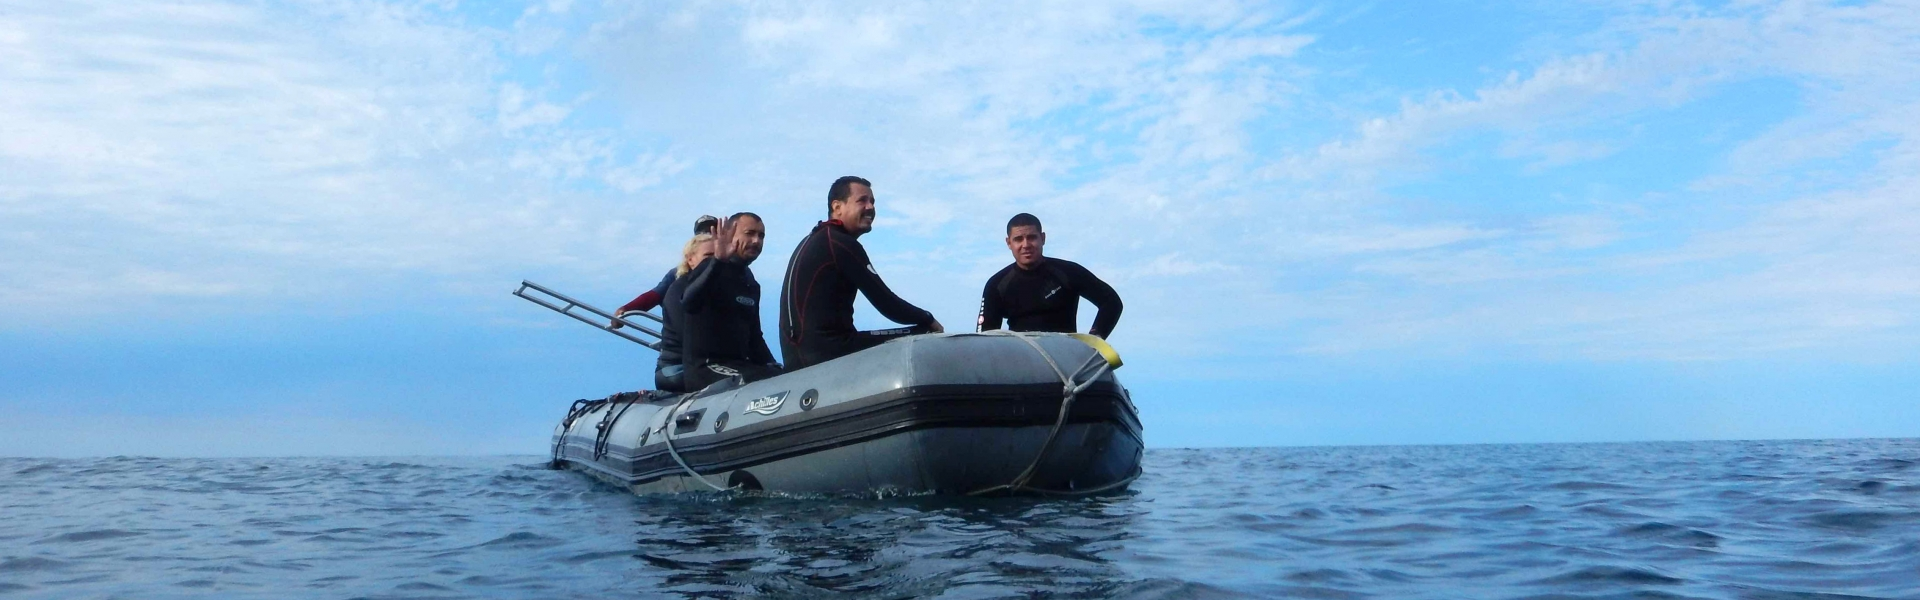 Four people in an inflatable boat on water